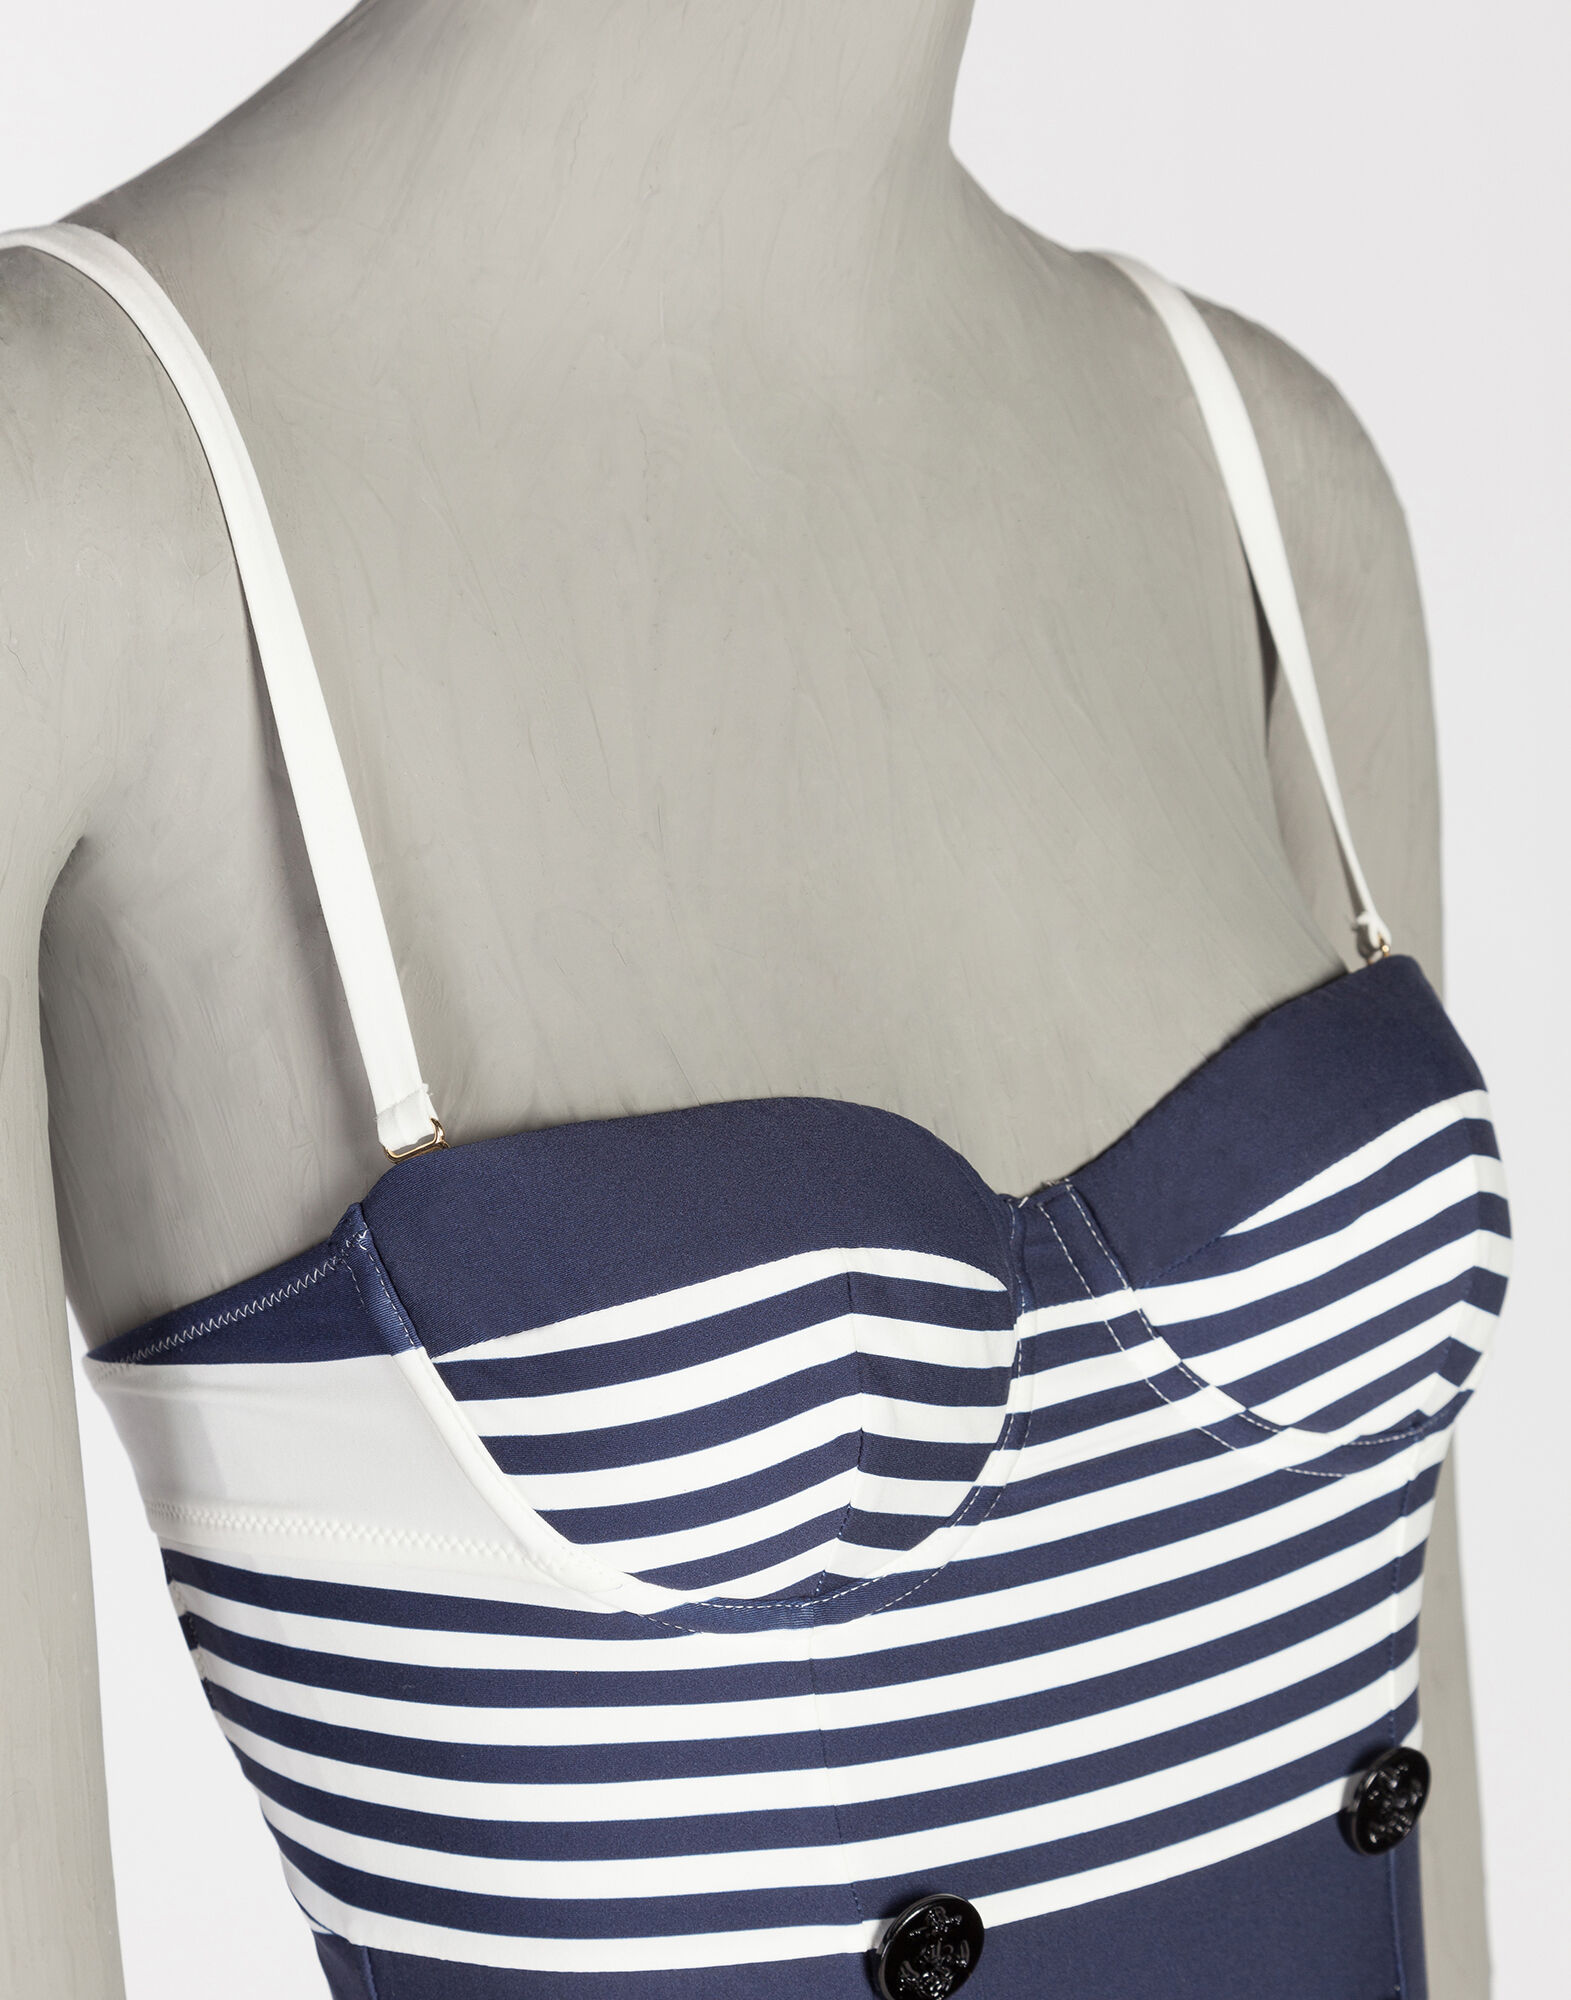 PRINTED PUSH-UP SWIMSUIT